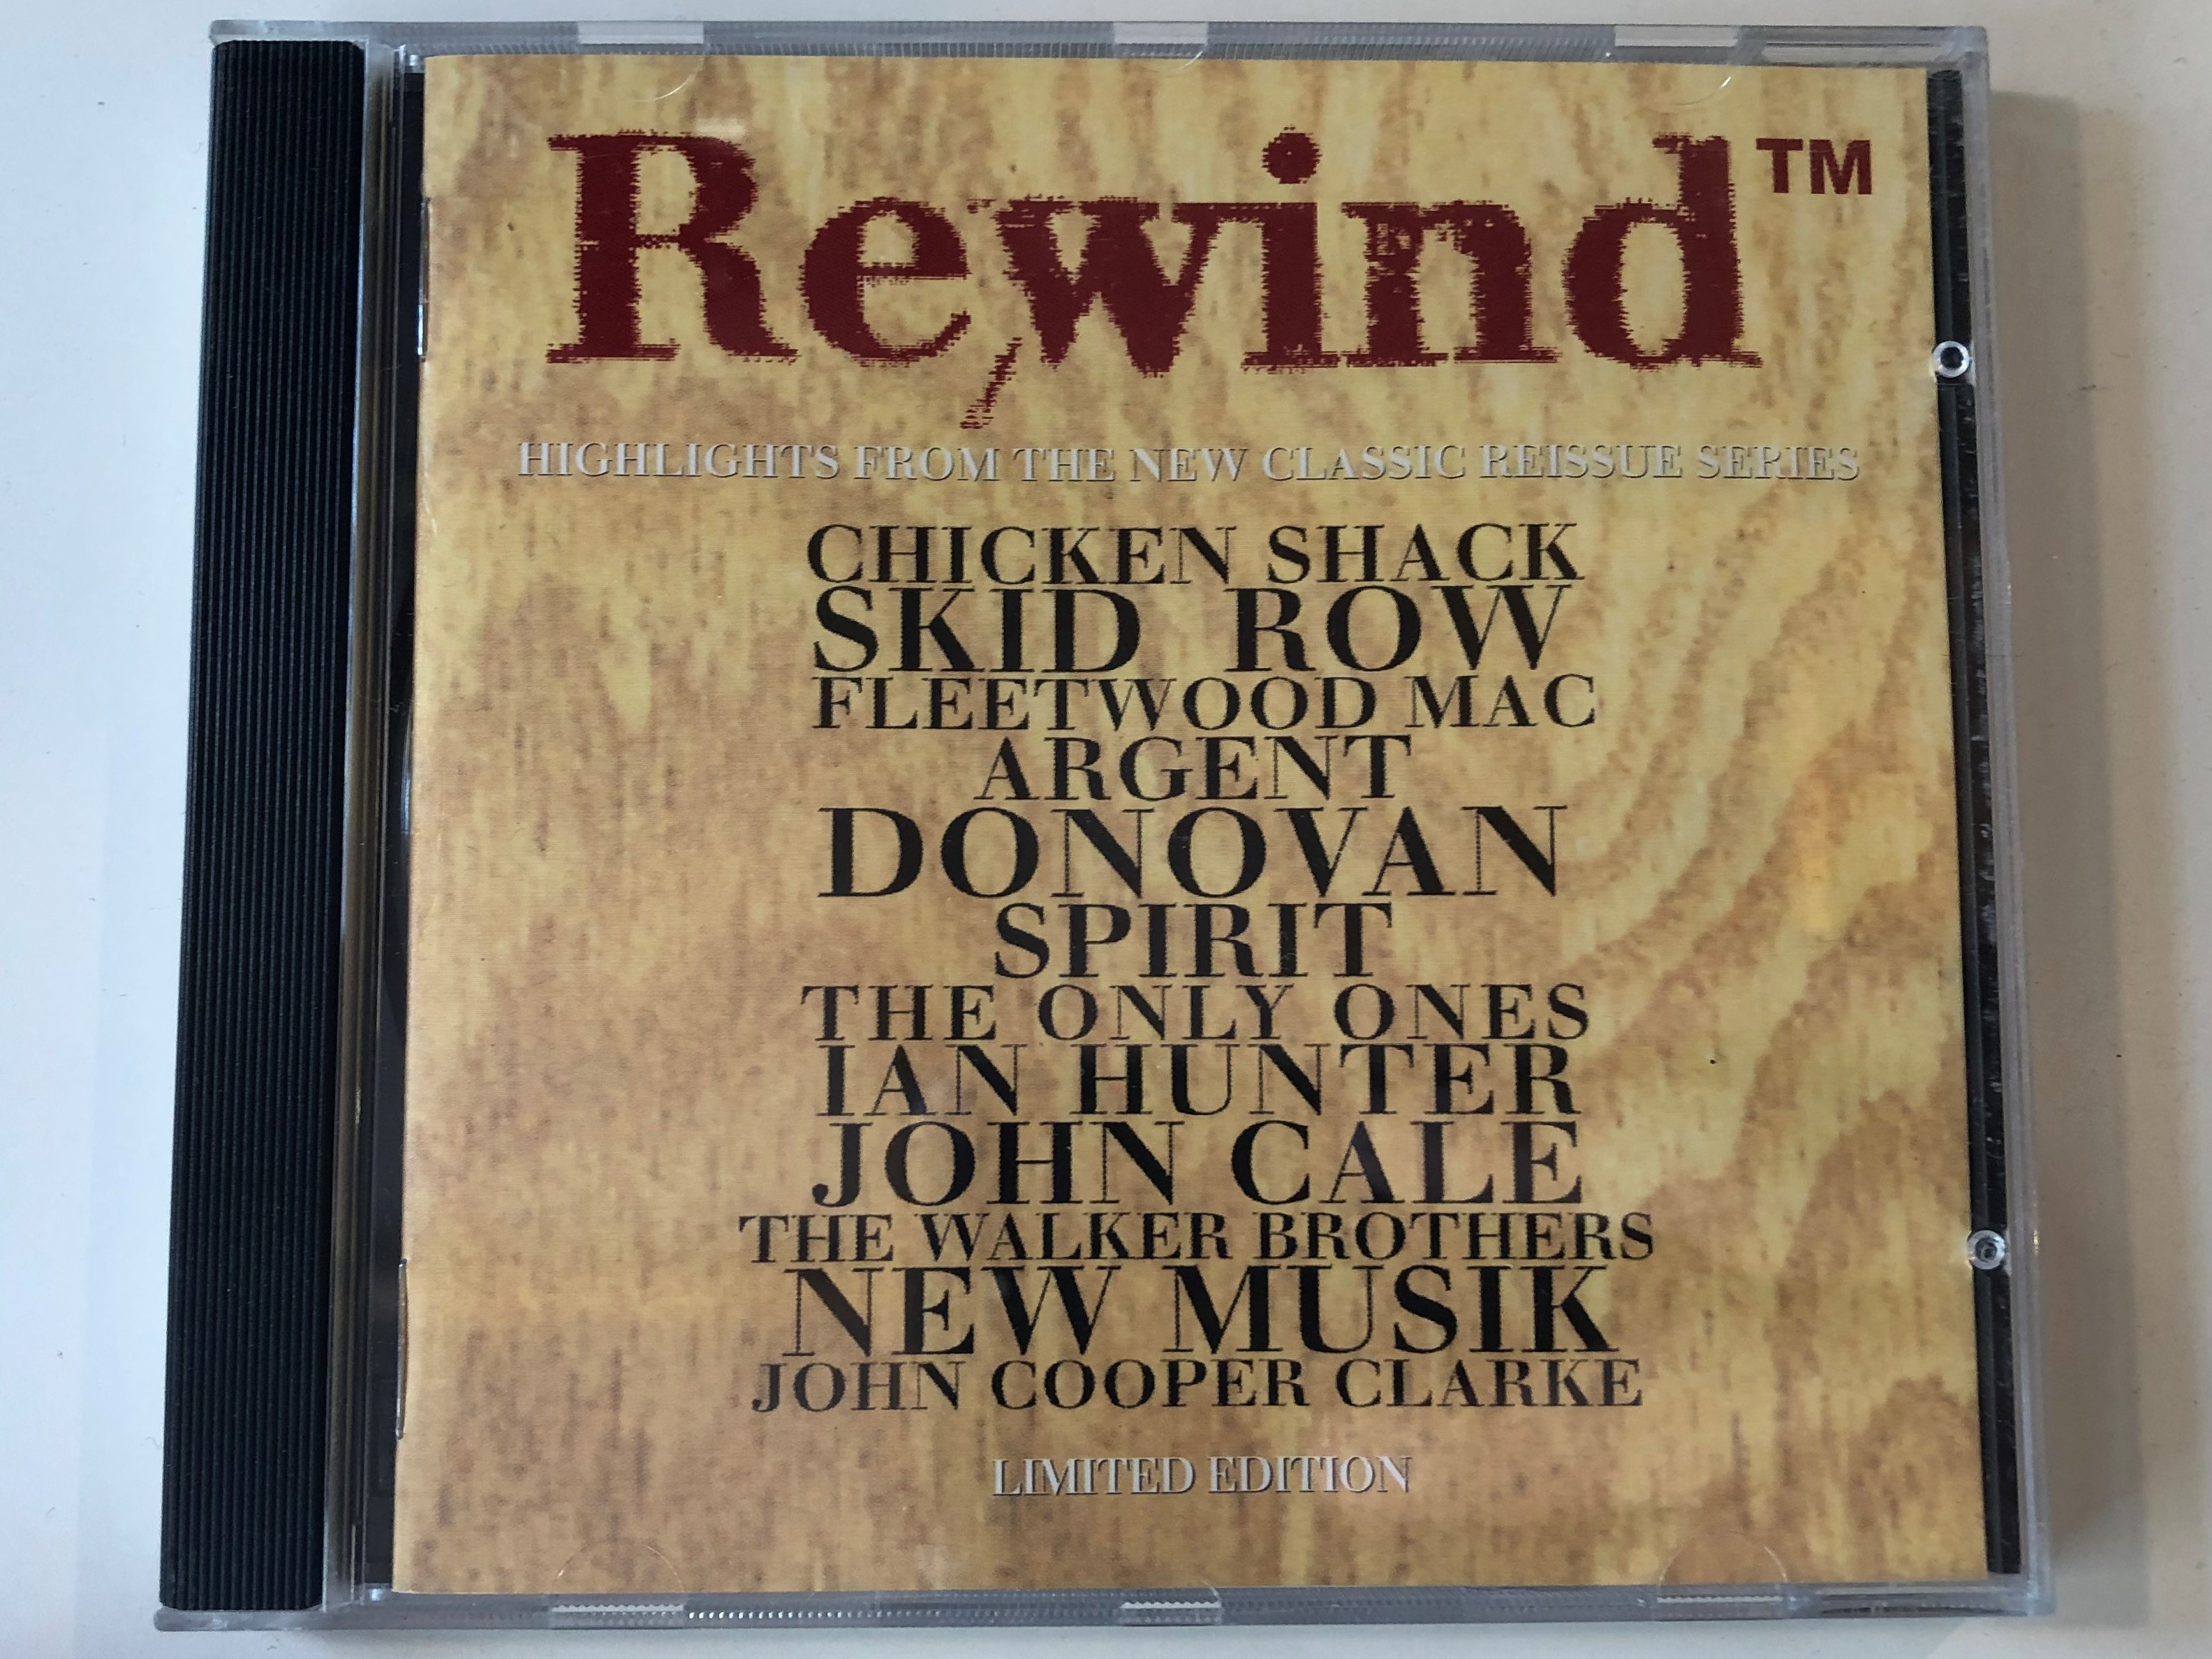 rewind-highlights-from-the-new-classic-reissue-series-chicken-shack-skid-row-fleetwood-mac-argent-donovan-spirit-the-only-ones-ian-hunter-john-cale-the-walker-brothers-new-musik-col-1-.jpg